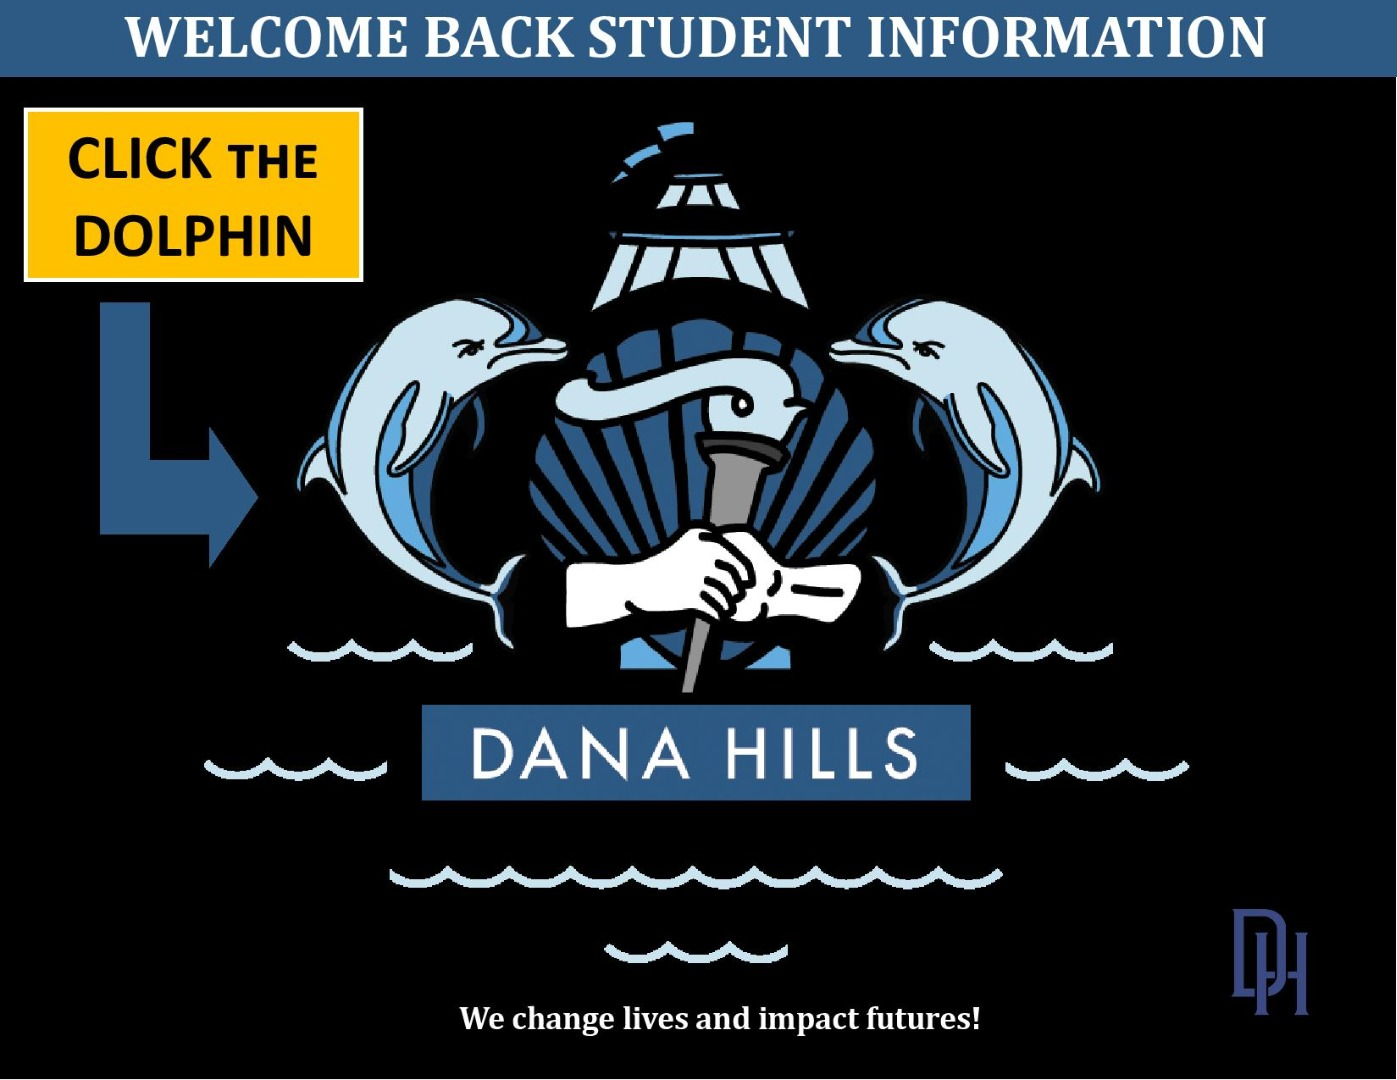 Welcome Back Student Information